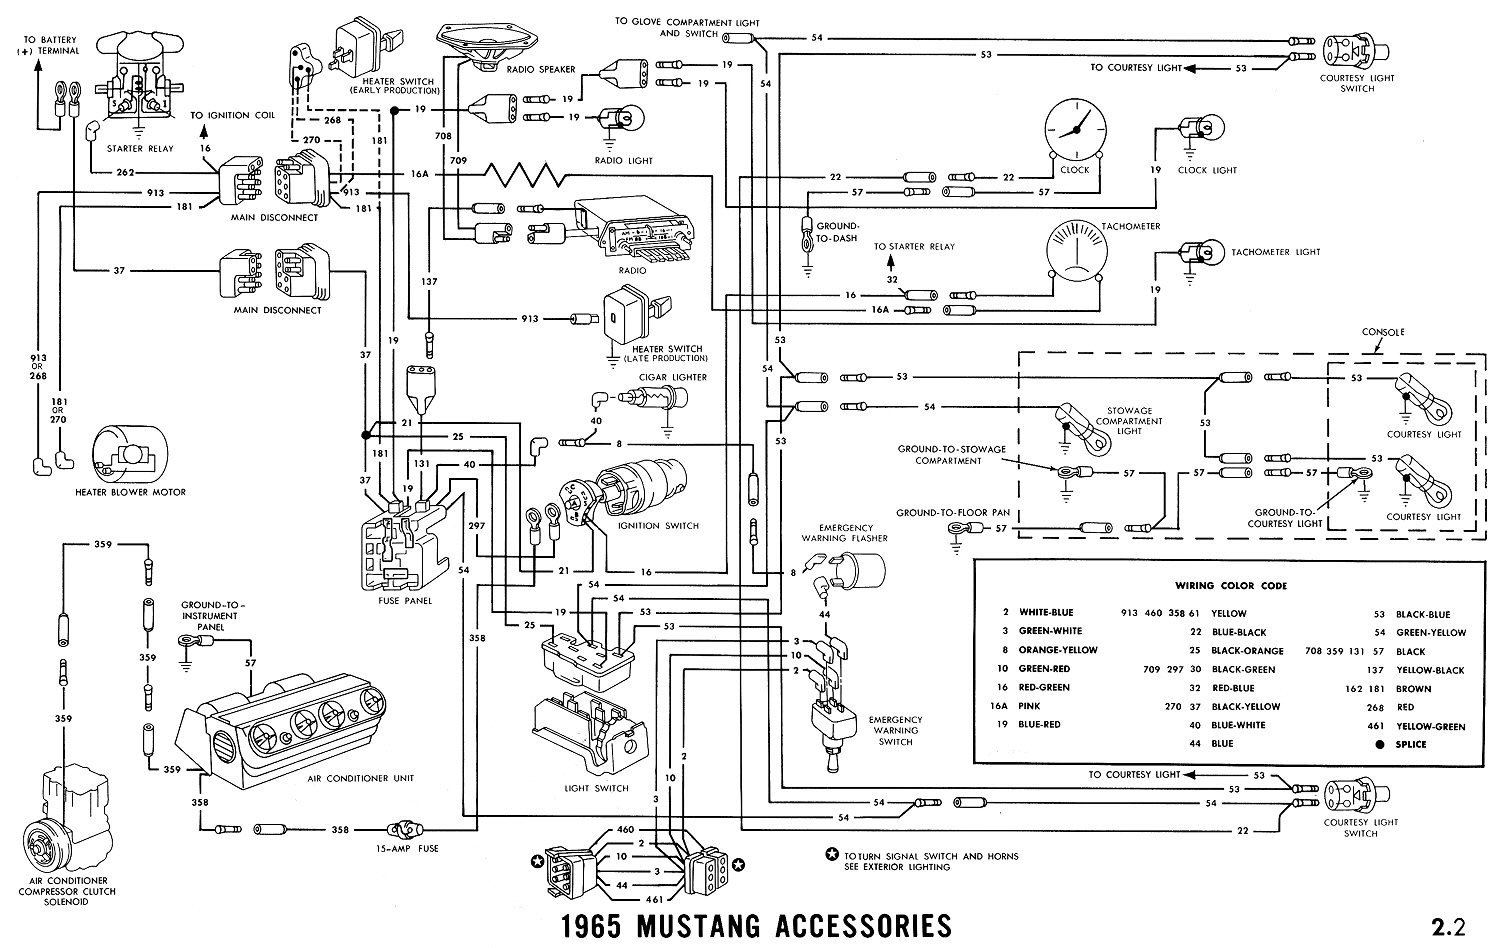 1965 ford mustang wiring diagram ford wiring diagrams instructions 1965 mustang wiring diagram free download 1965 ford mustang wiring diagram at wws5ww cheapraybanclubmaster Choice Image